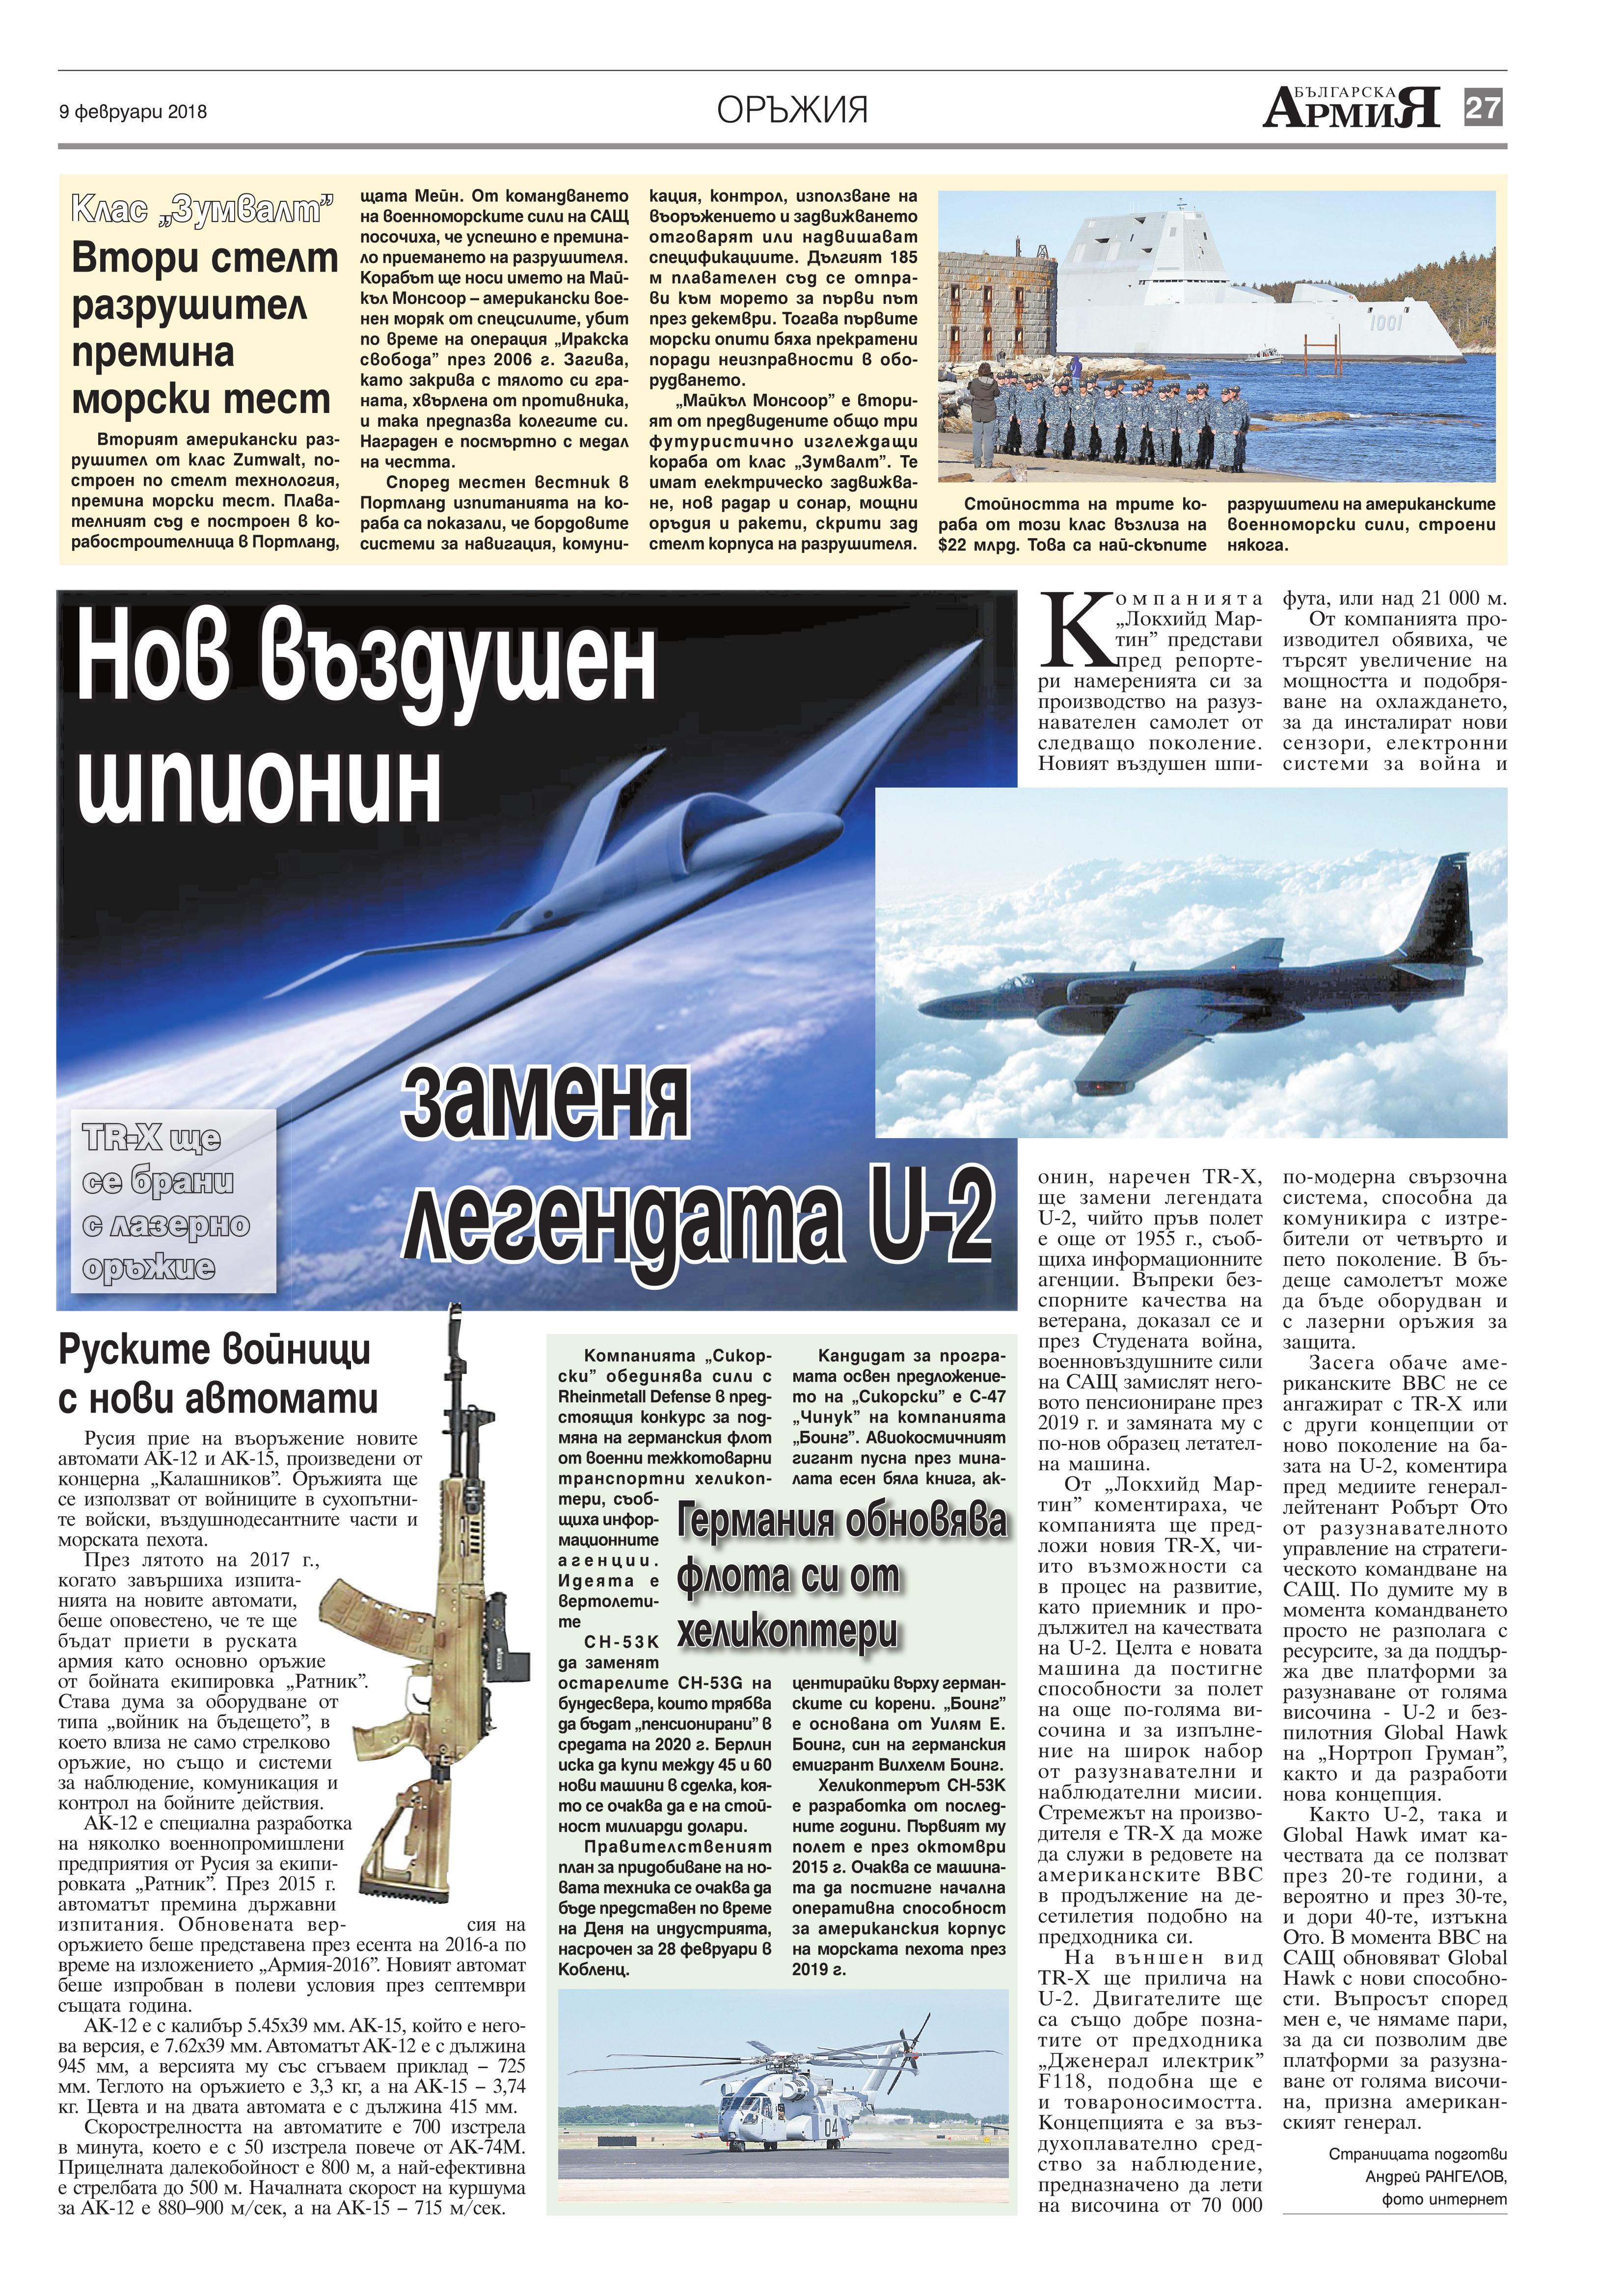 https://armymedia.bg/wp-content/uploads/2015/06/27.page1_-34.jpg